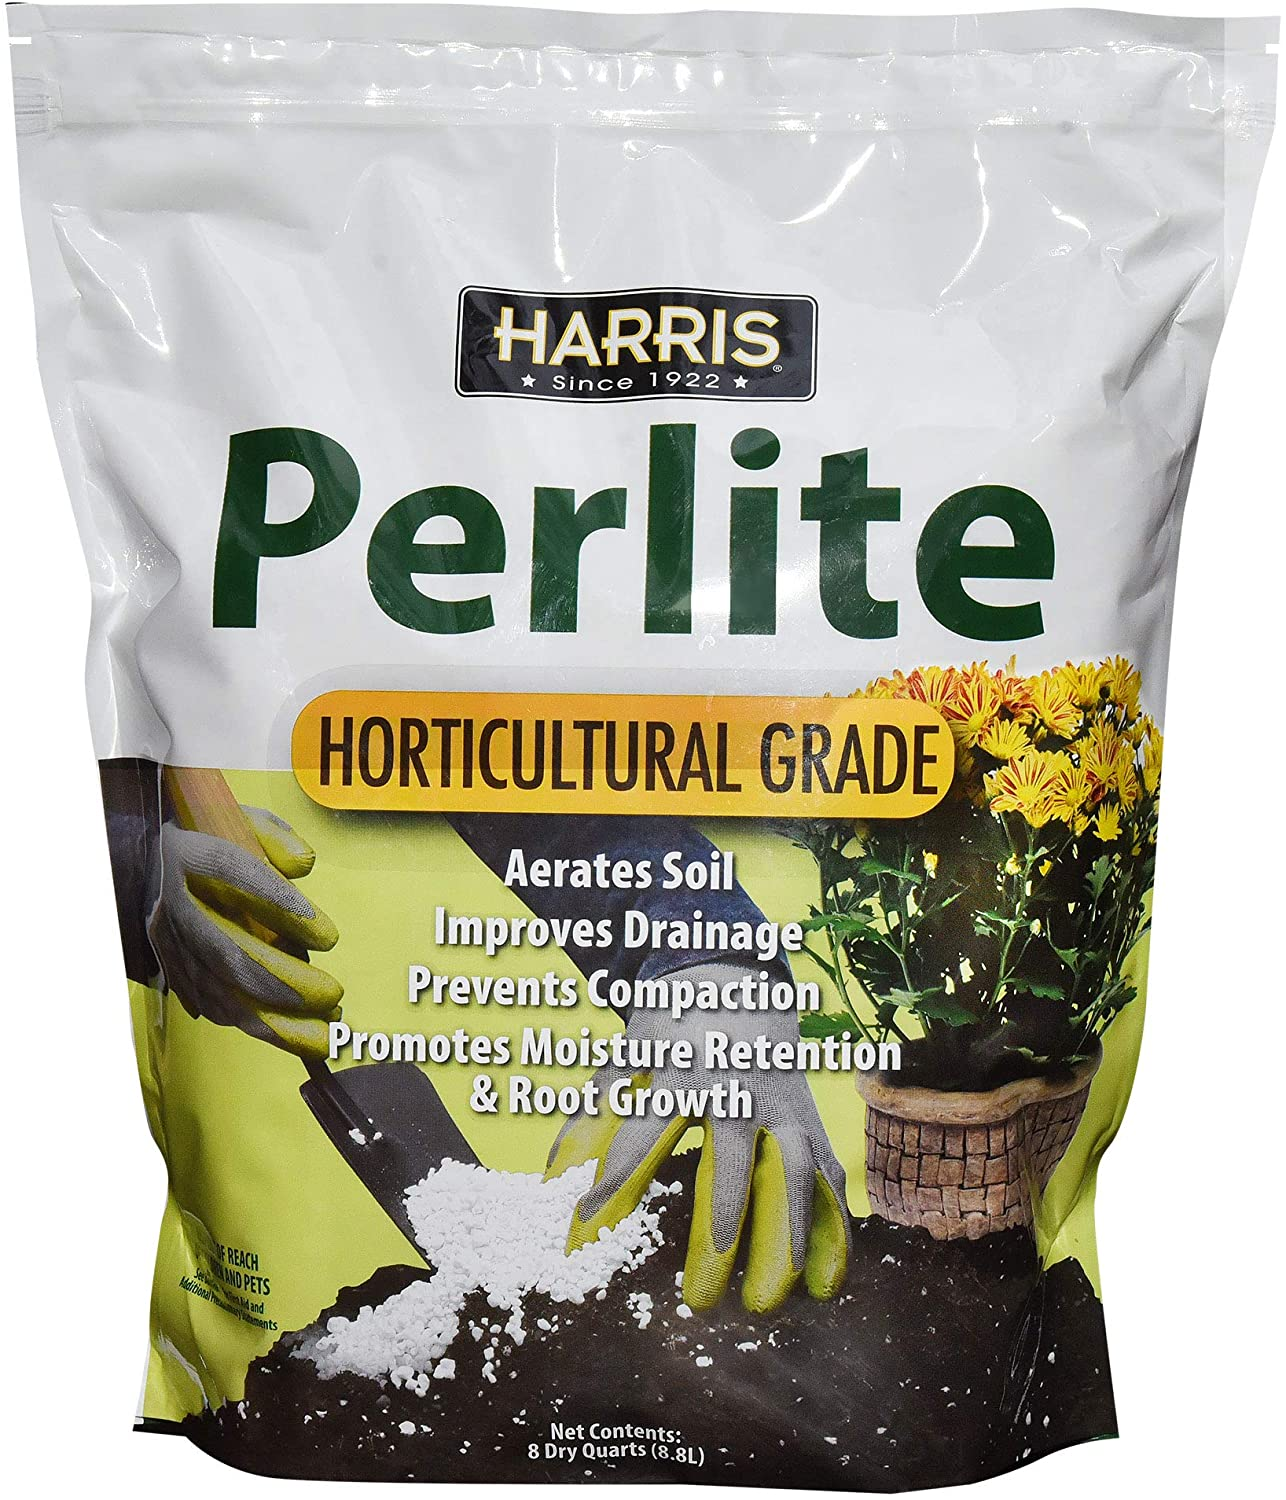 Harris Premium Horticultural Perlite for Indoor Plants and Gardening, 8qt to Promote Root Growth and Soil Health